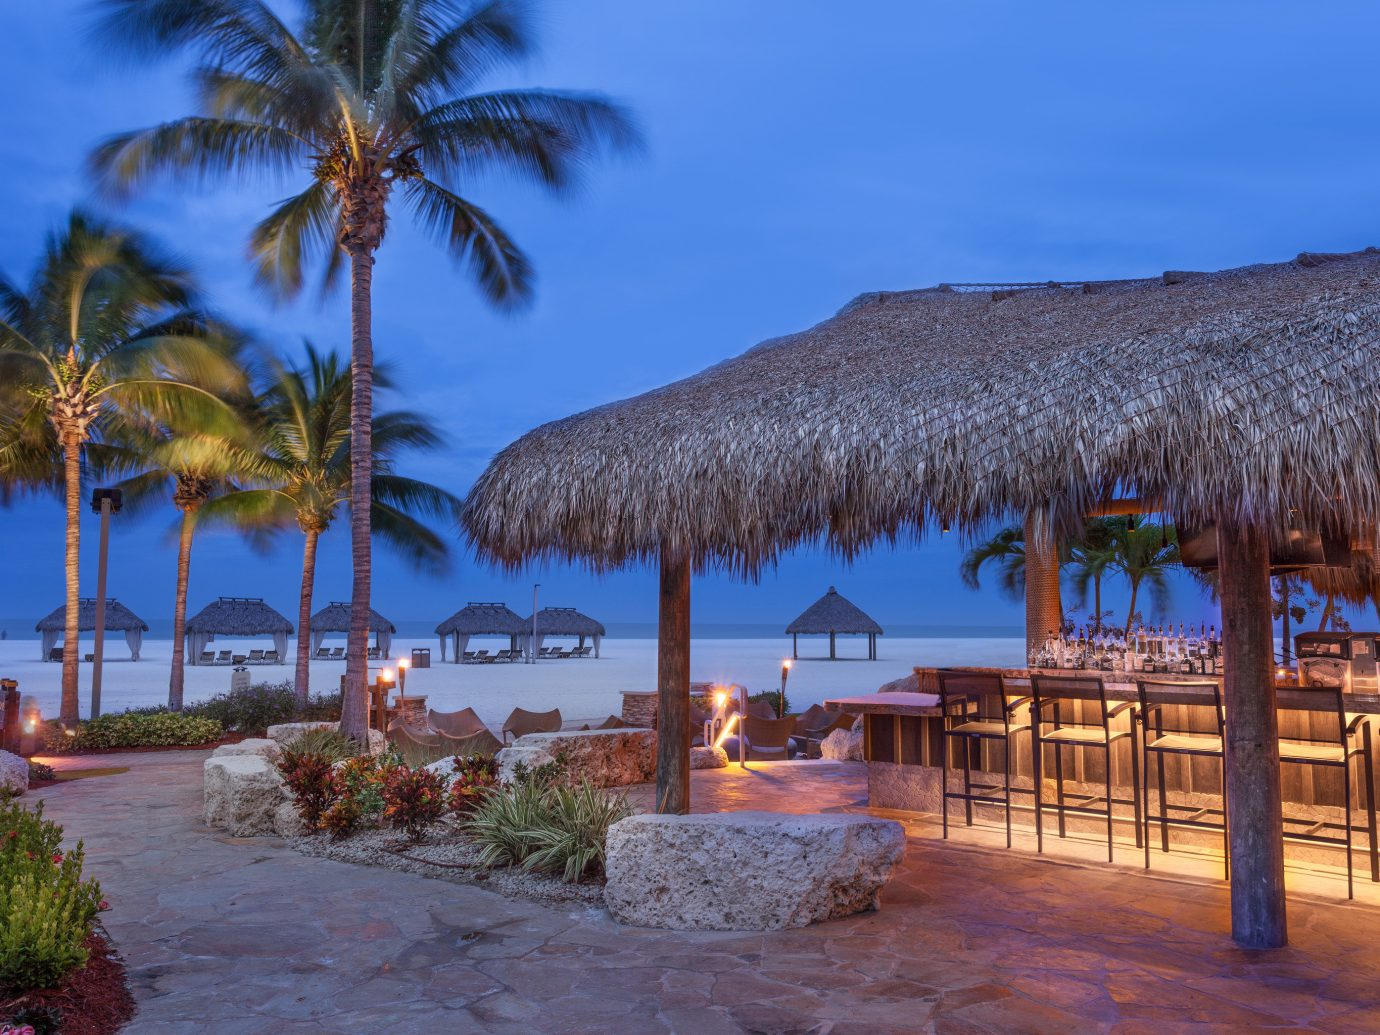 Hotels sky outdoor tree water Beach palm Sea Ocean Resort vacation arecales estate shore Coast plant evening bay palm family Pool tropics Lagoon sandy lined